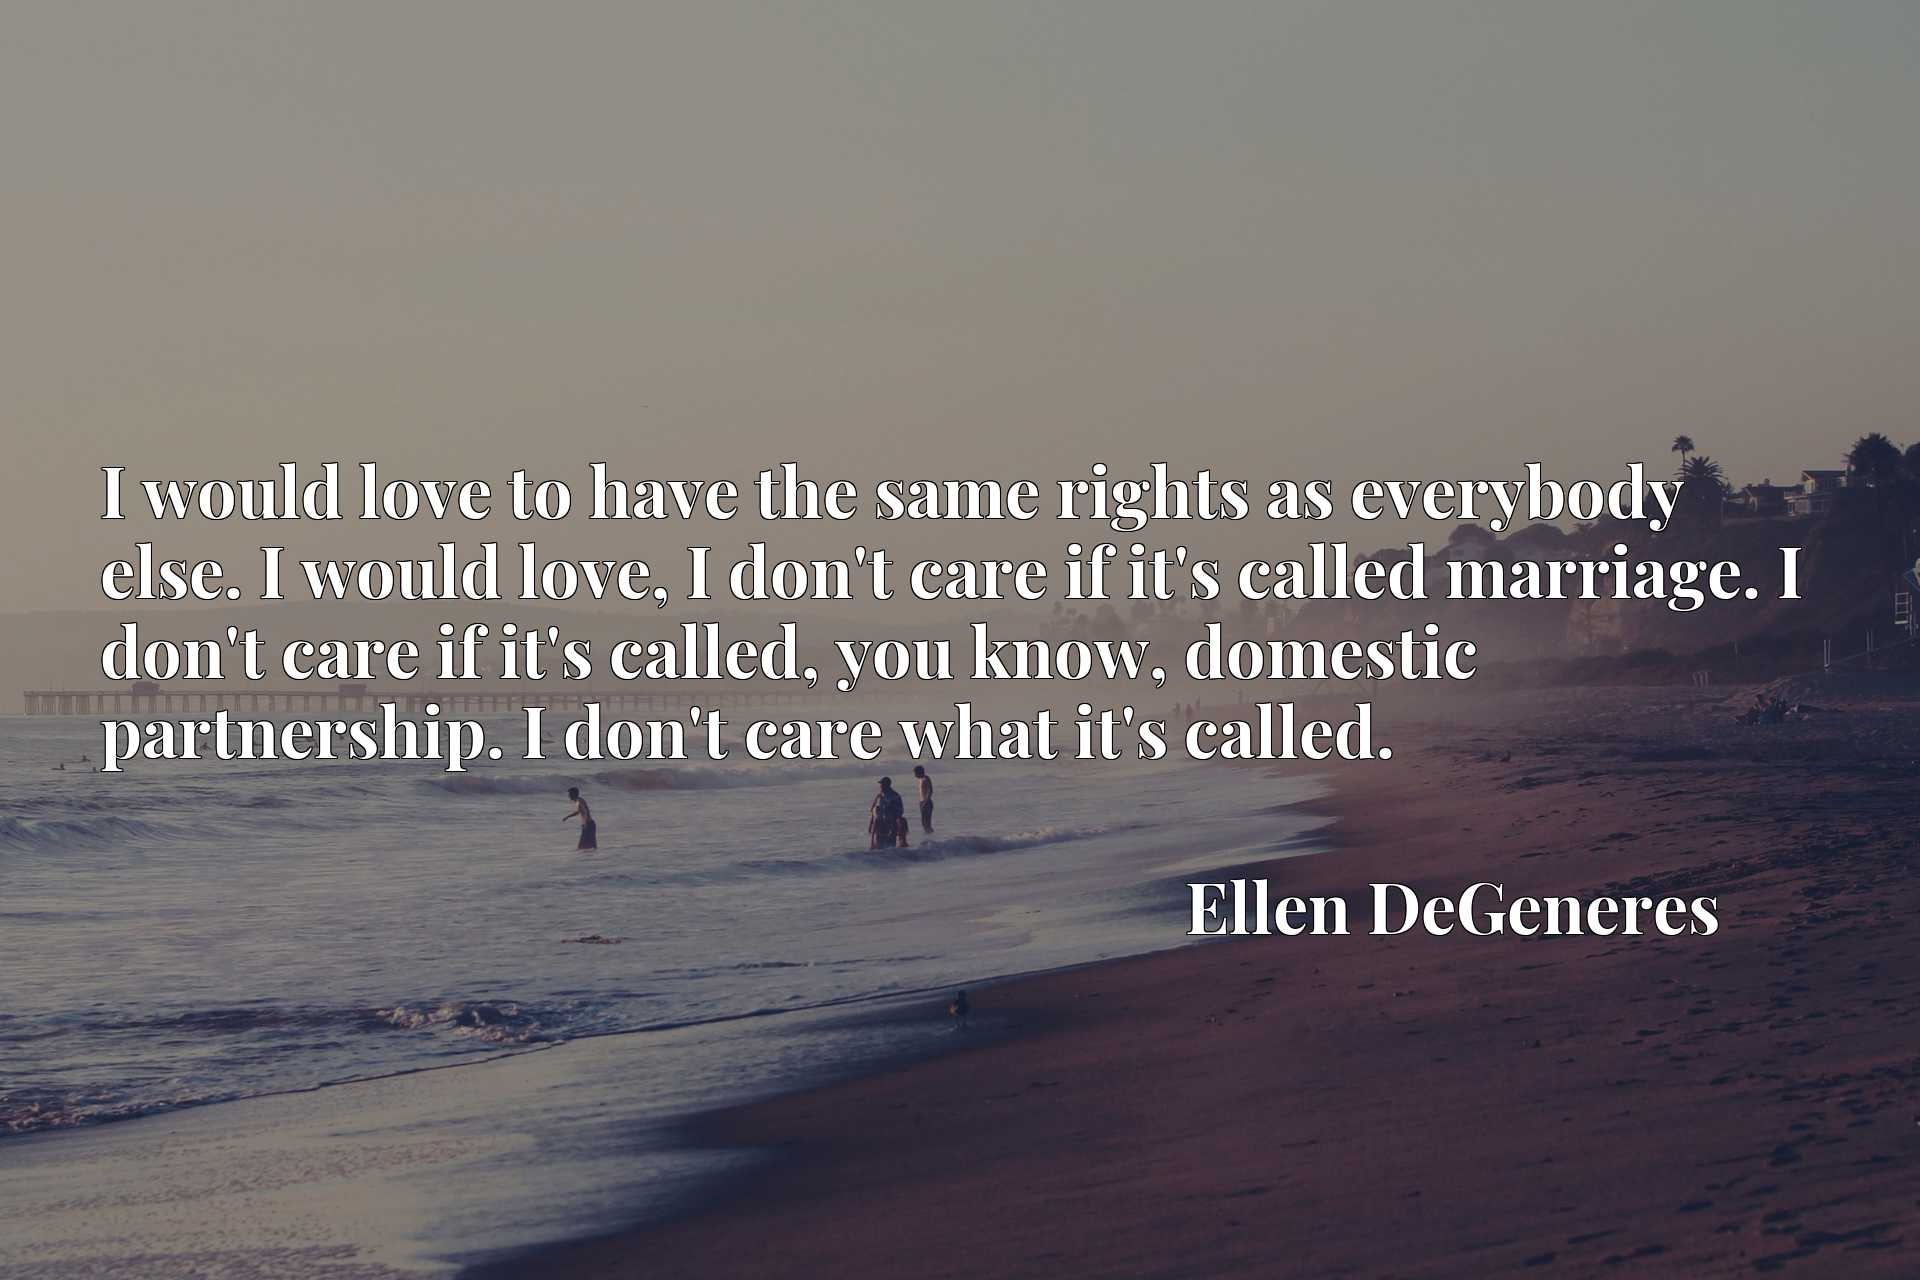 I would love to have the same rights as everybody else. I would love, I don't care if it's called marriage. I don't care if it's called, you know, domestic partnership. I don't care what it's called.